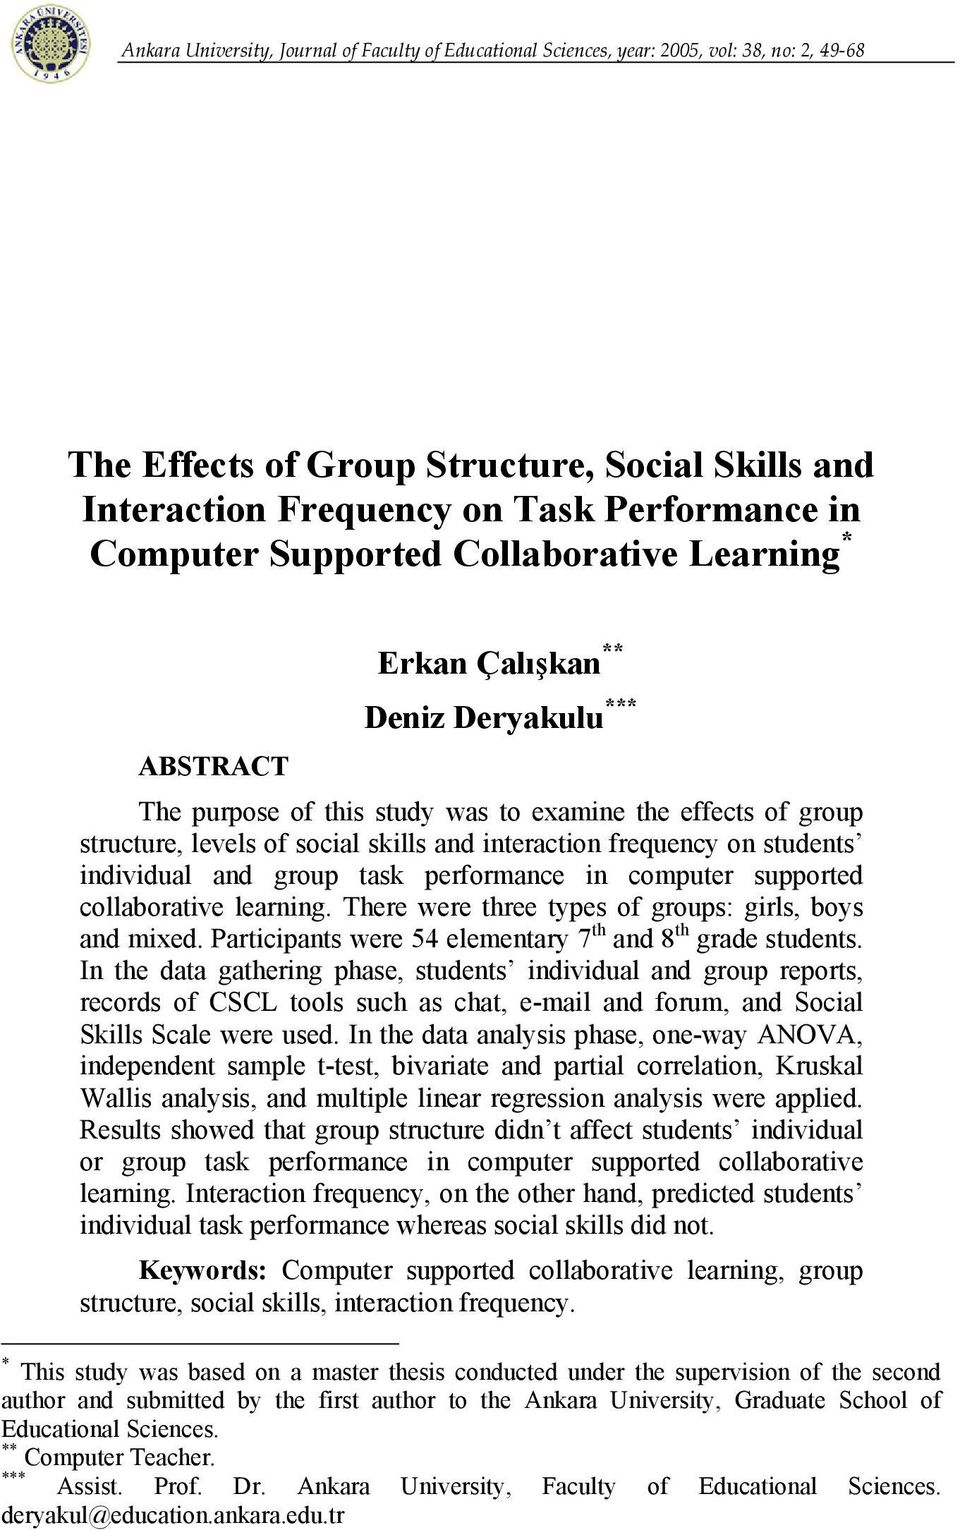 interaction frequency on students individual and group task performance in computer supported collaborative learning. There were three types of groups: girls, boys and mixed.